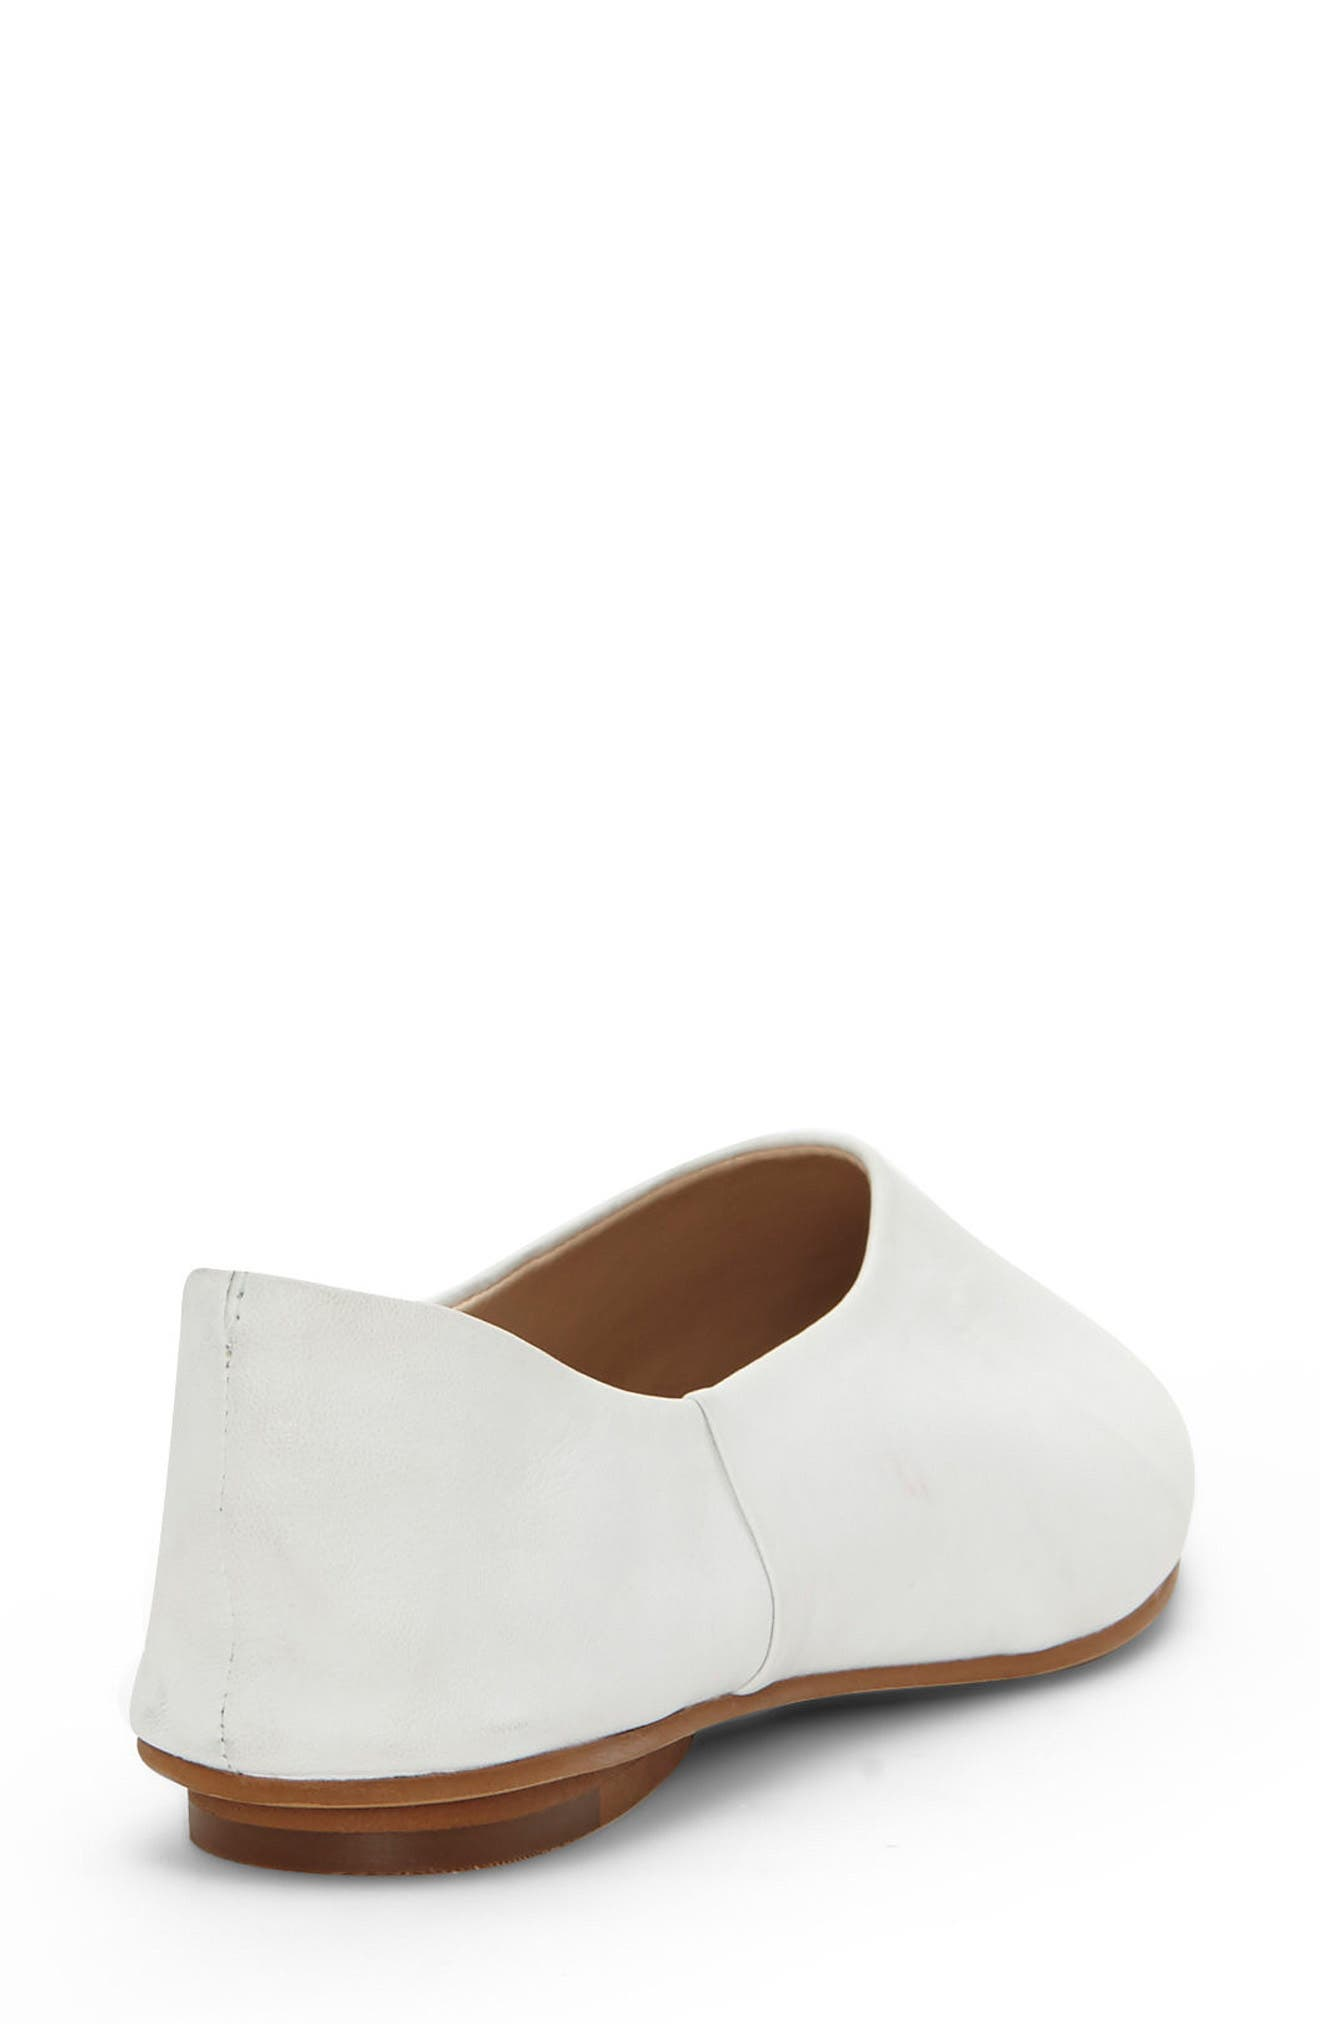 Stanta Pointy Toe Flat,                             Alternate thumbnail 2, color,                             Pure White Leather